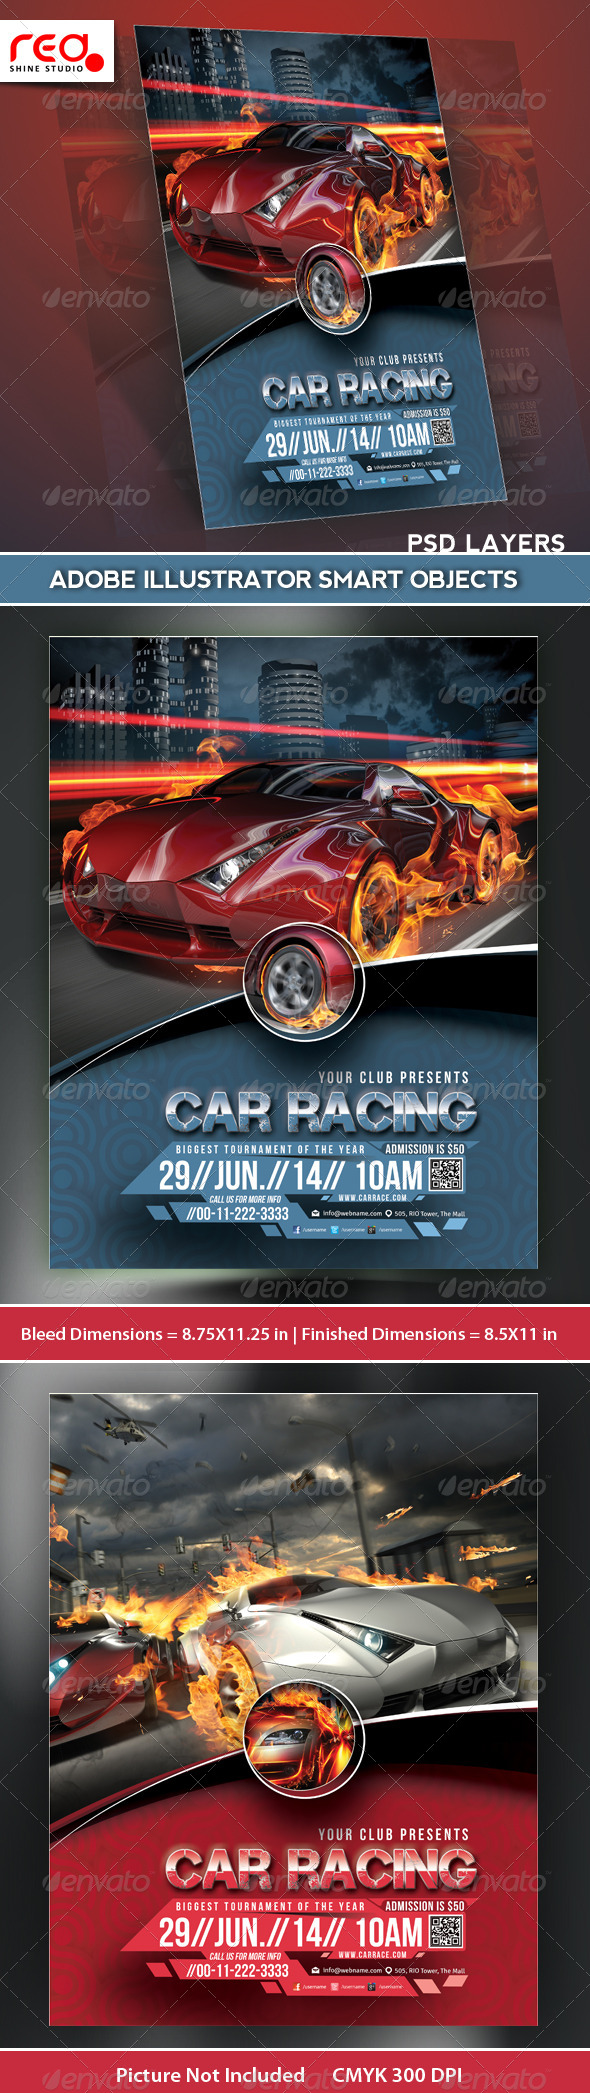 F1 Graphics, Designs & Templates from GraphicRiver